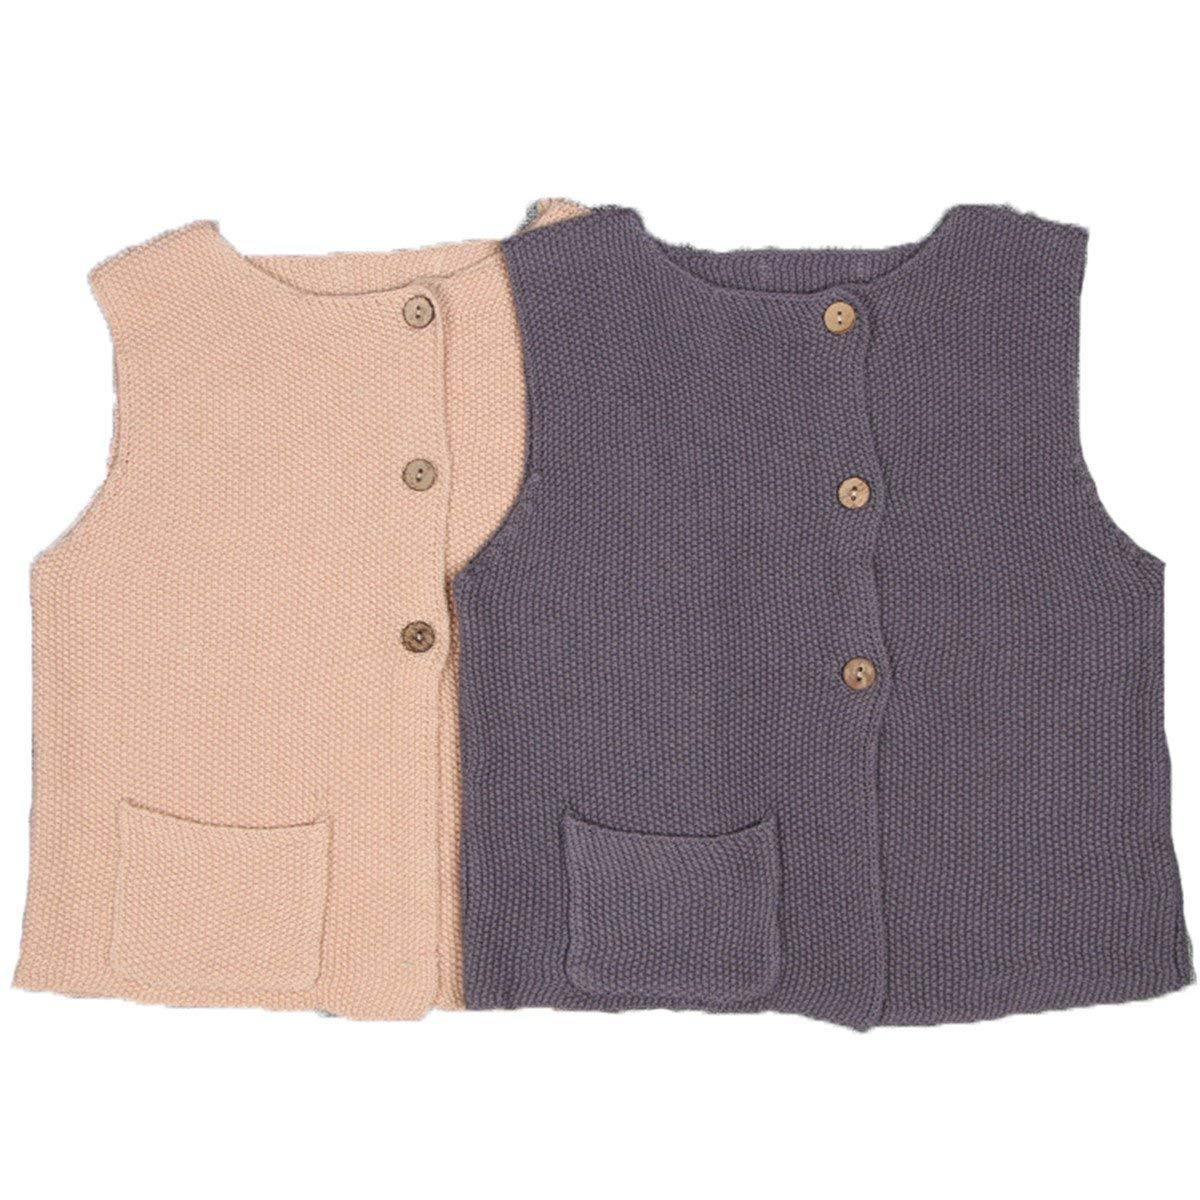 Toddler Girl Knit Front Button-Down Pocket Sweater Cardigan Waistcoat Vest